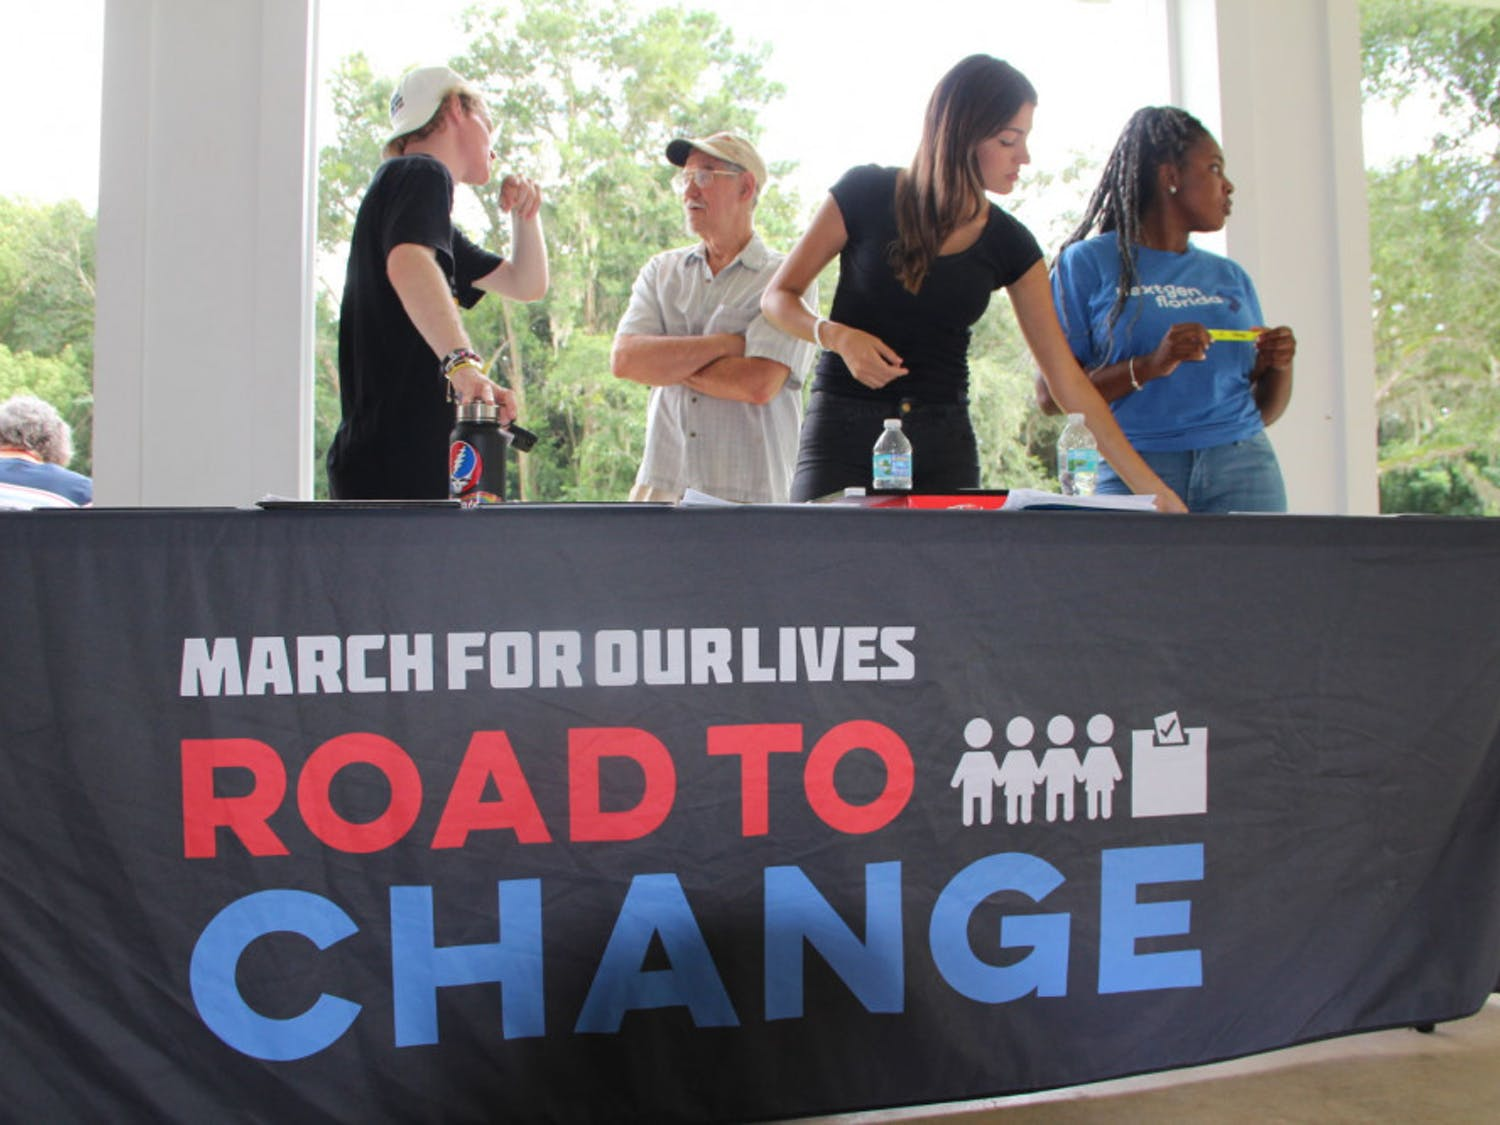 """Tom Bergan, David Finley, Ingrid Fernandes and Gracey Jean-Bernard stand behind a booth for """"March for our Lives — Road to Change."""""""